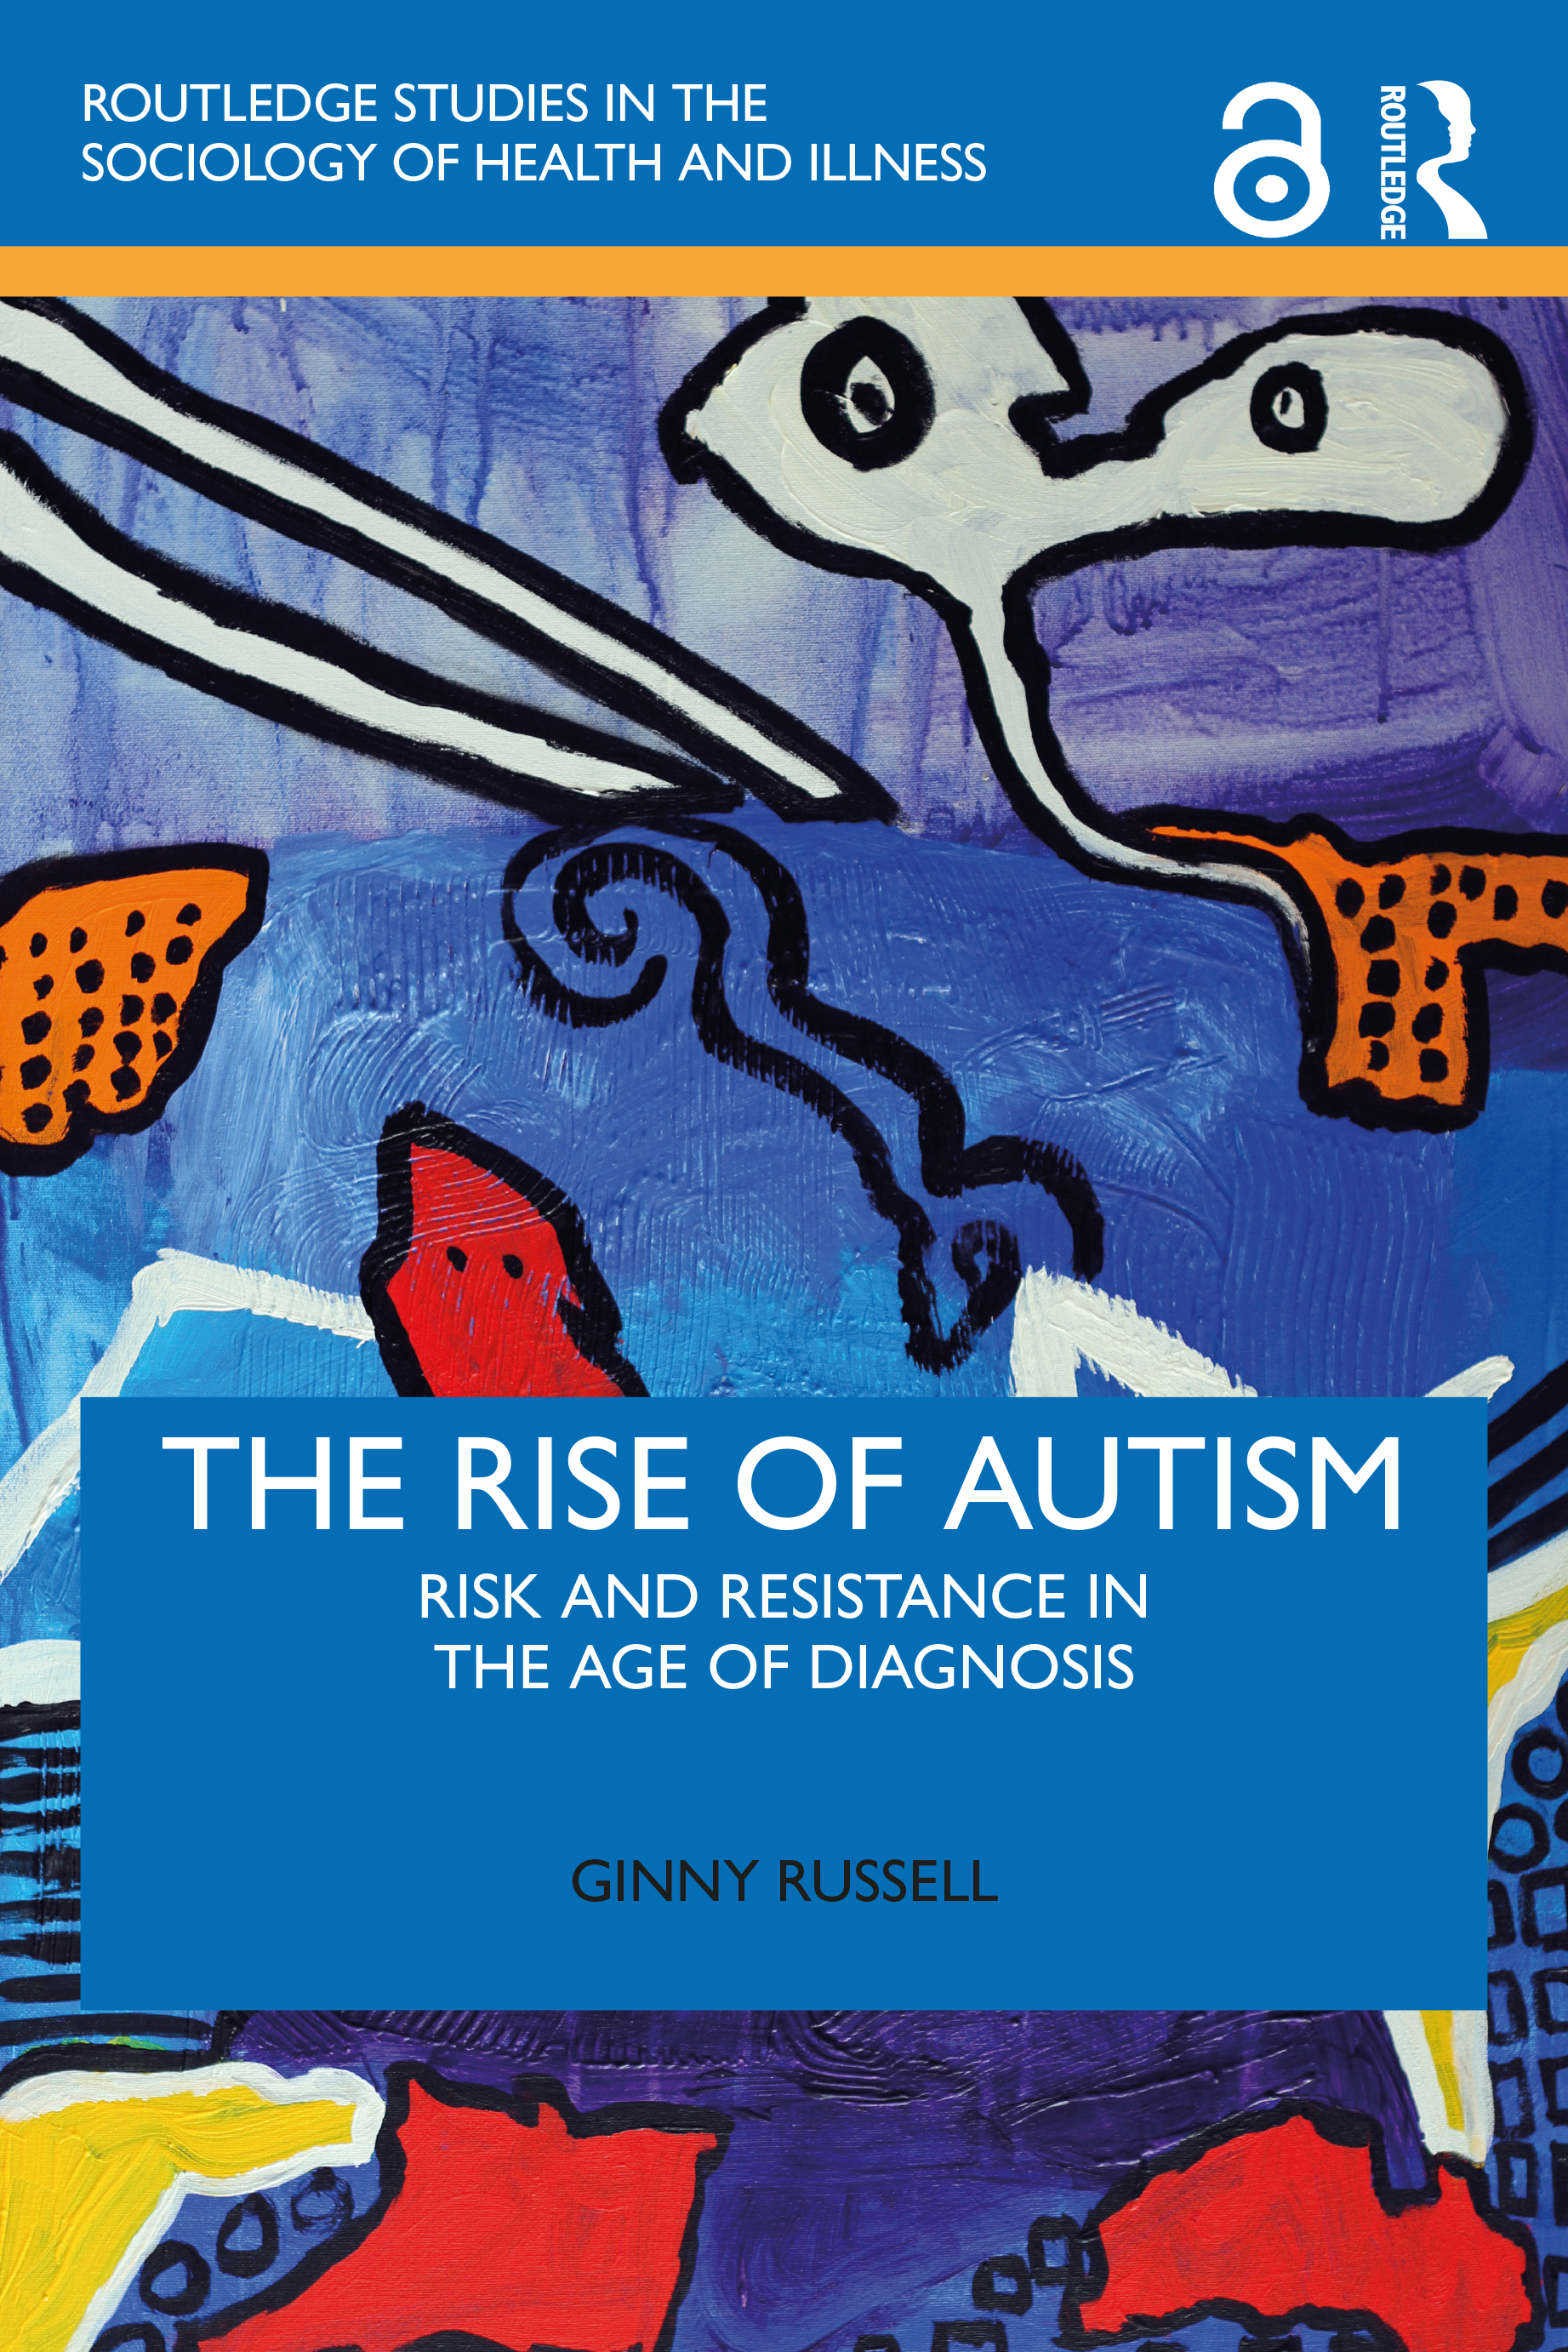 The Rise of Autism